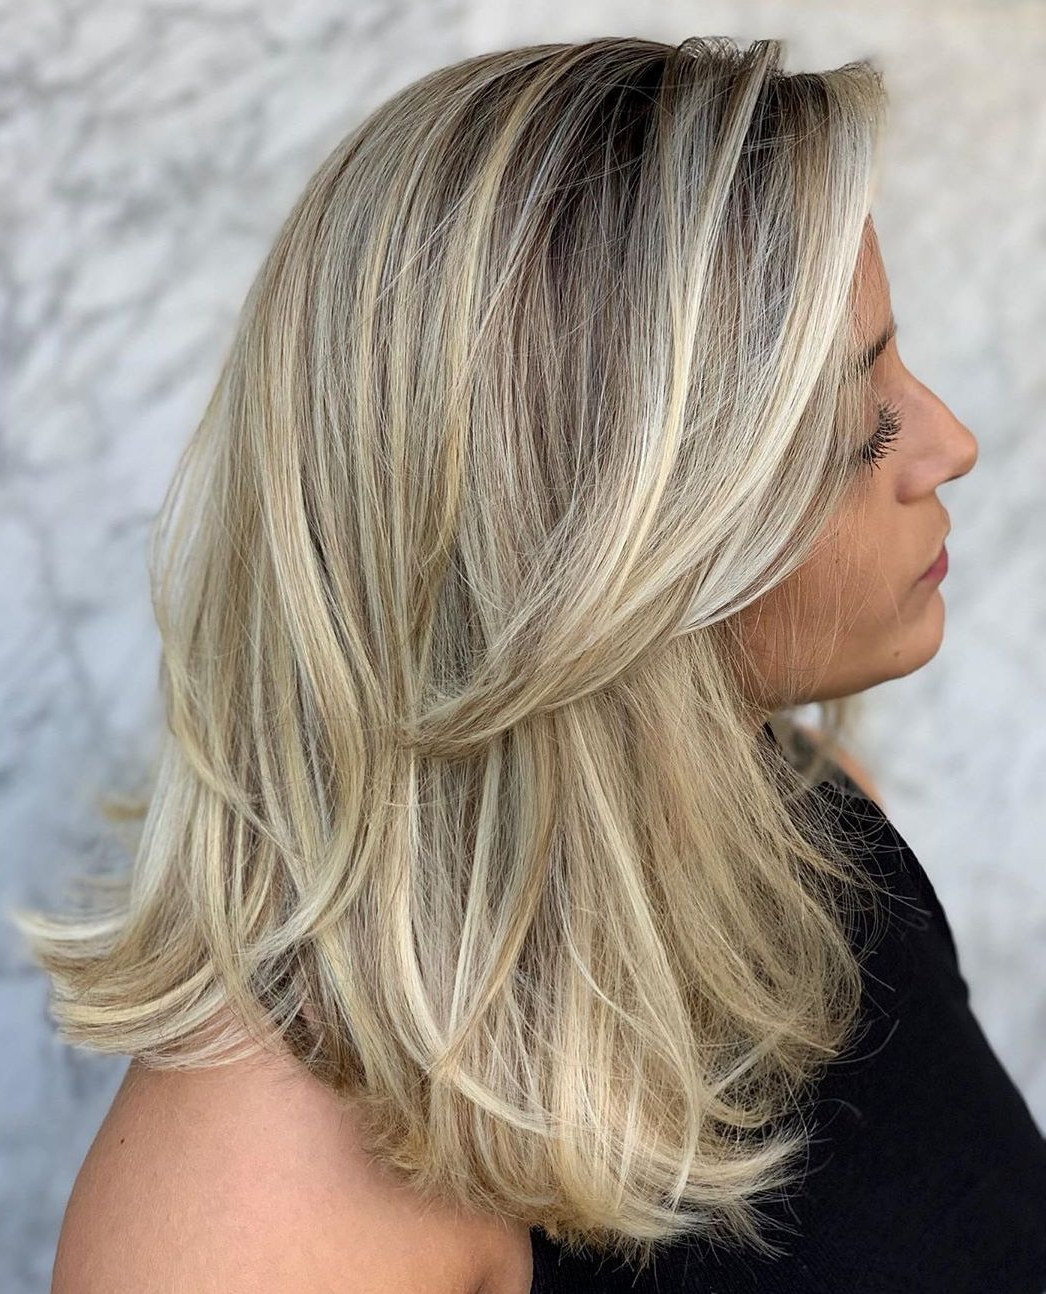 40 Medium Length Hairstyles For Thick Hair ⋆ Palau Oceans Within Trendy Sleek Mid Length Haircuts With Shaggy Ends (View 6 of 20)